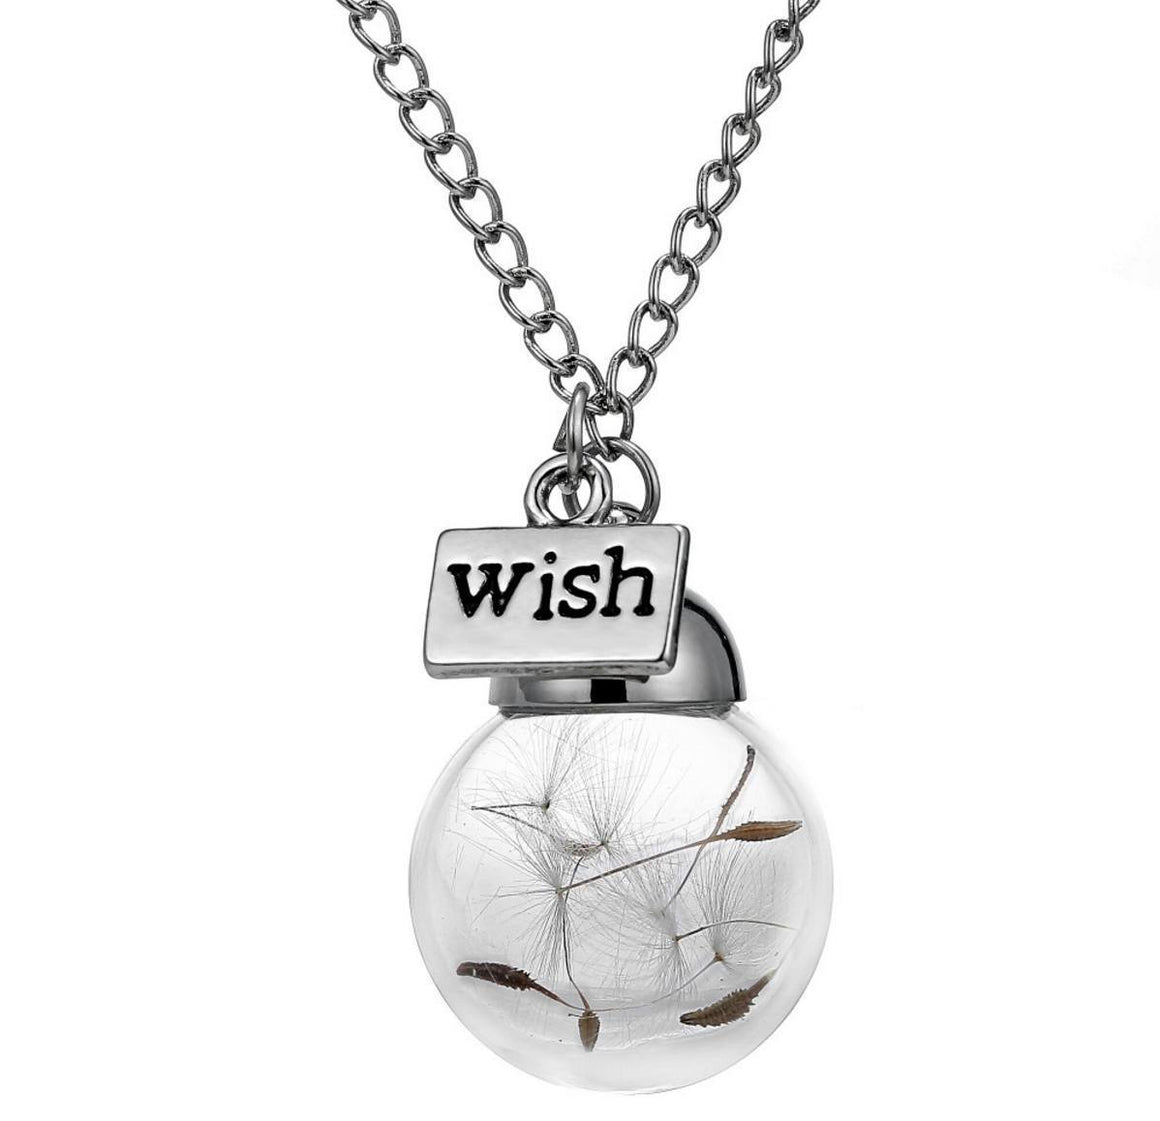 Wish Dandelion Crystal Necklace